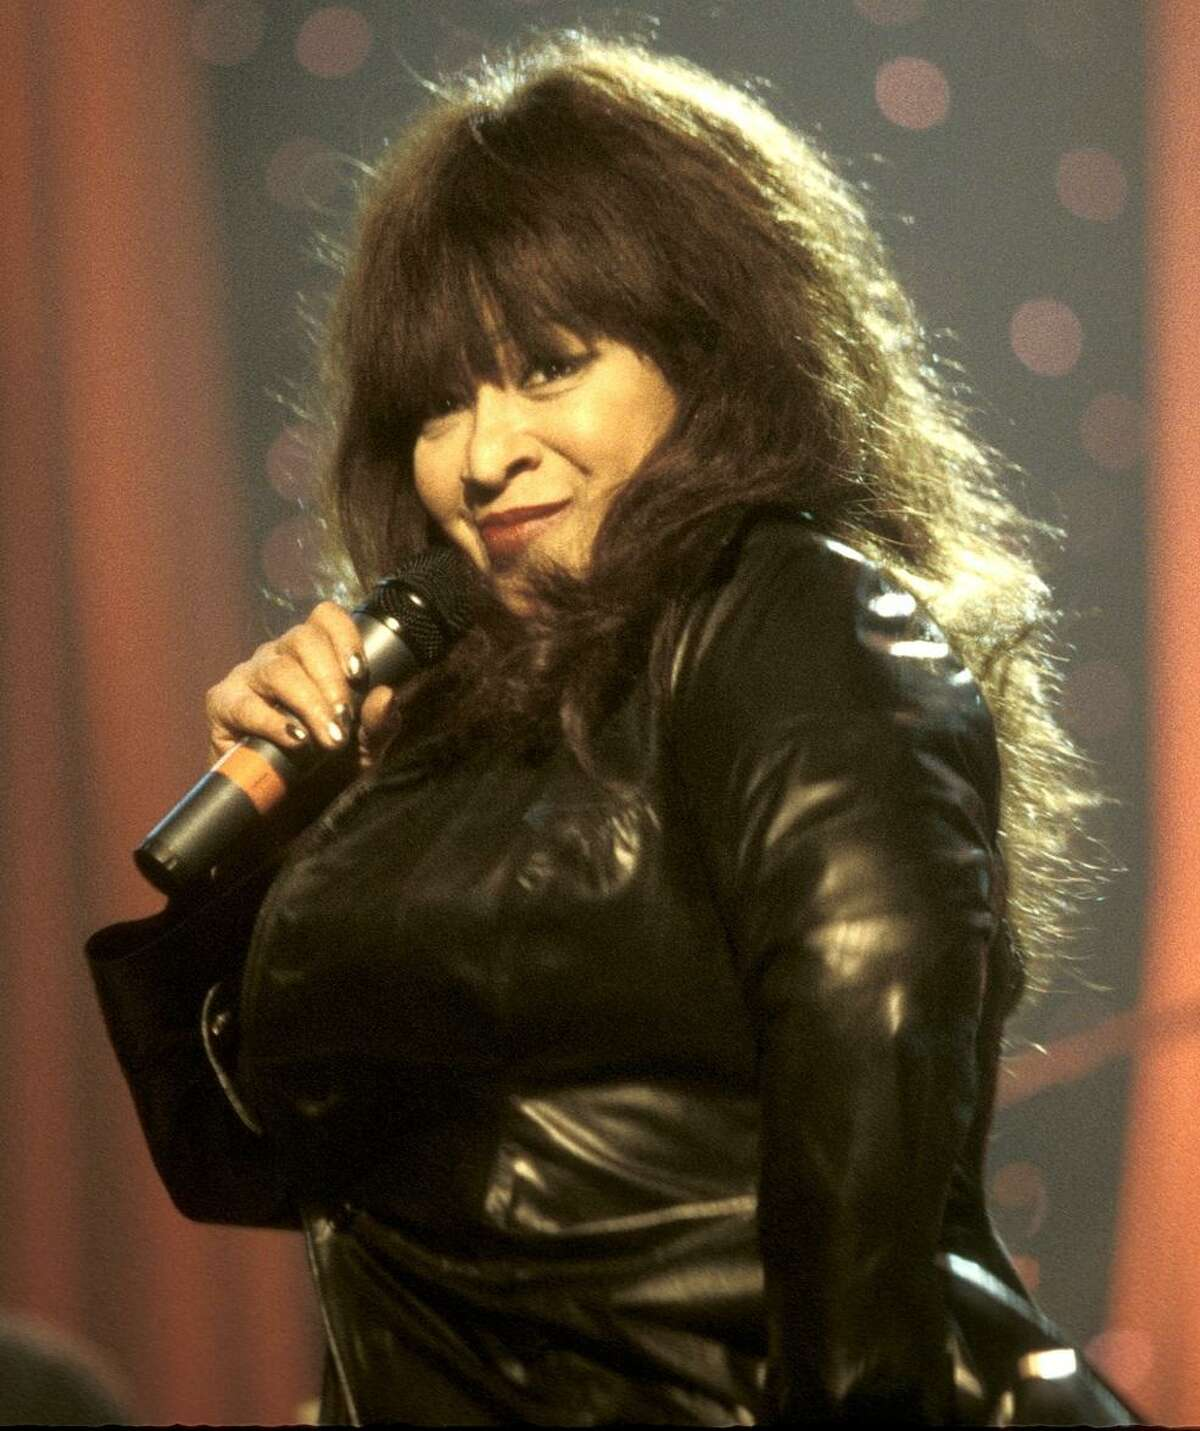 Singer of the girl group The Ronettes, Ronnie Spector, born Veronica Yvette Bennett, is shown performing on stage during a